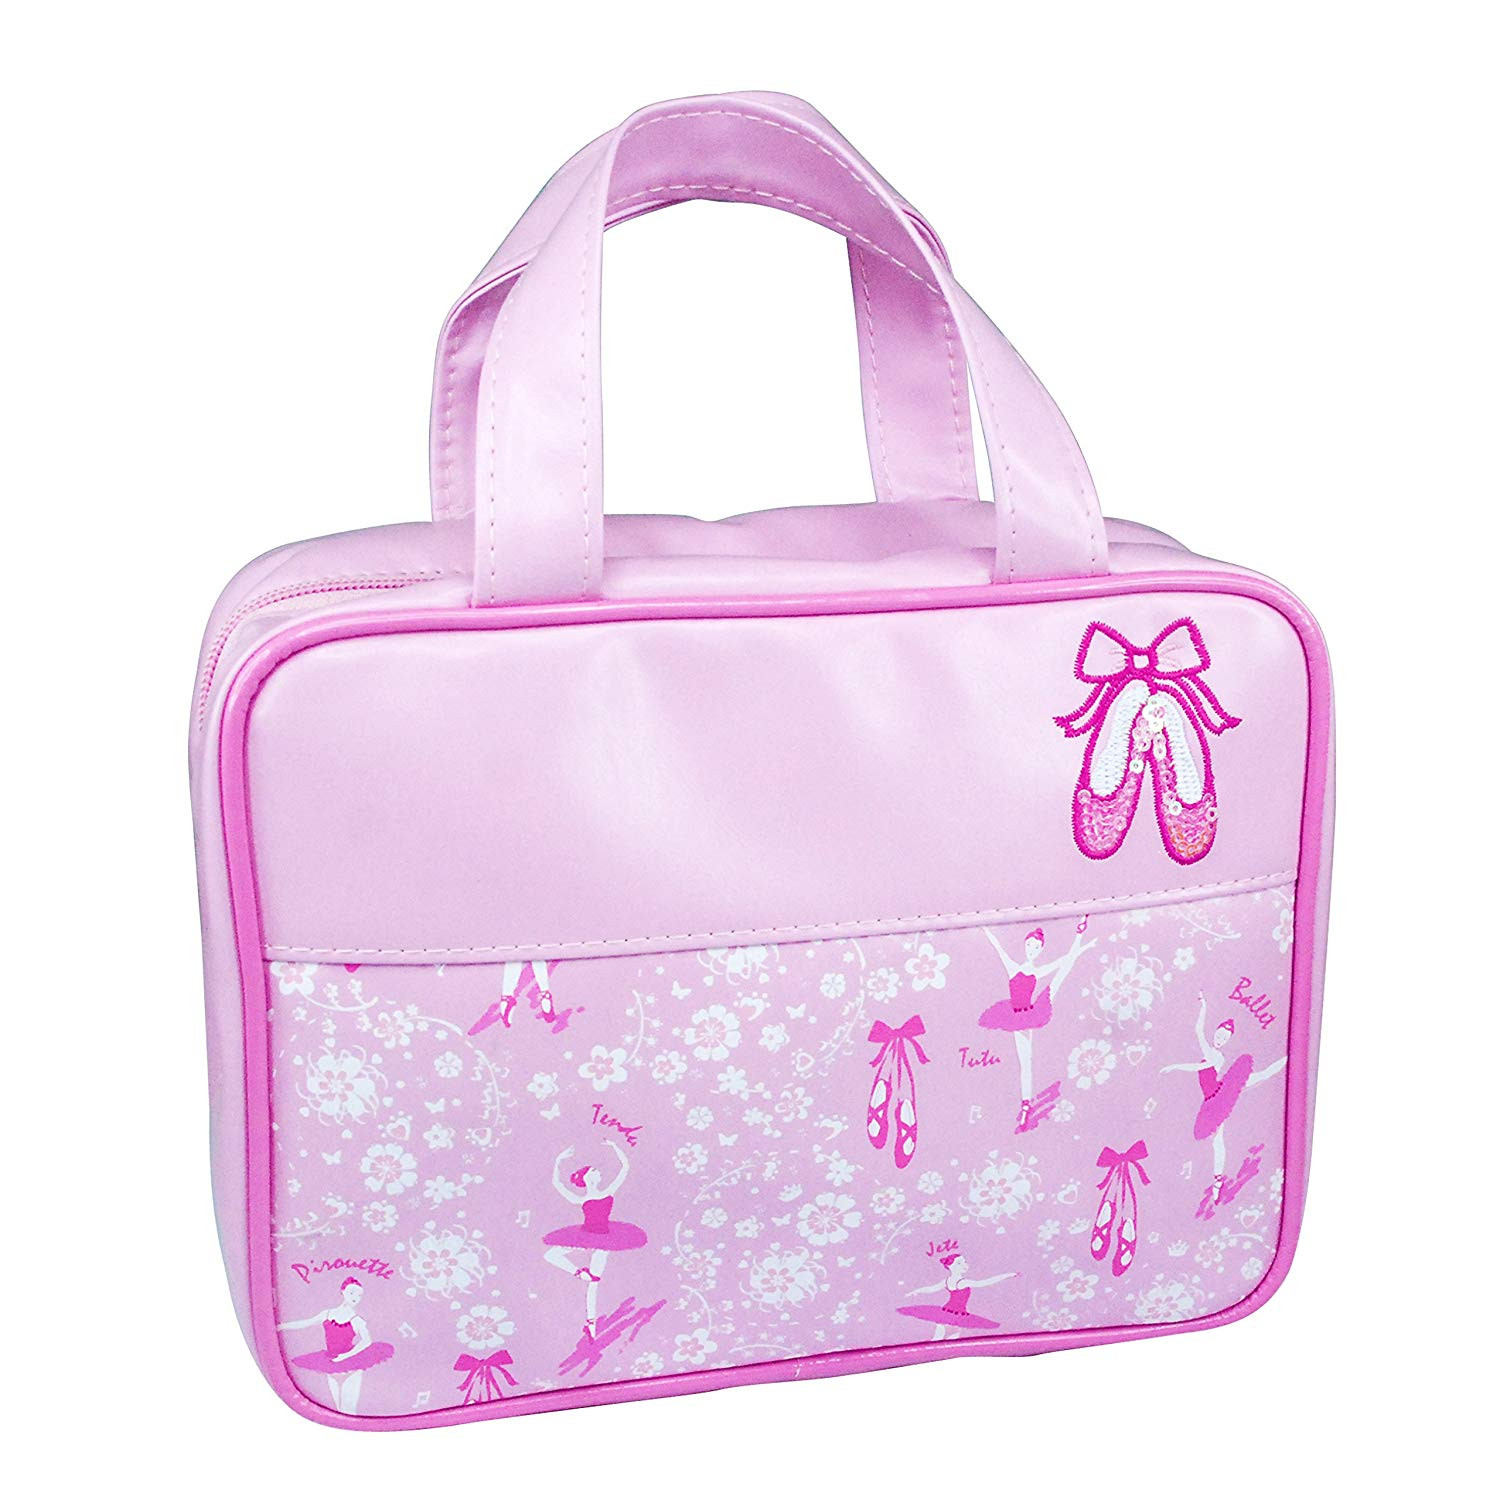 Pink Poppy Prima Ballerina Toiletries bag in pale pink